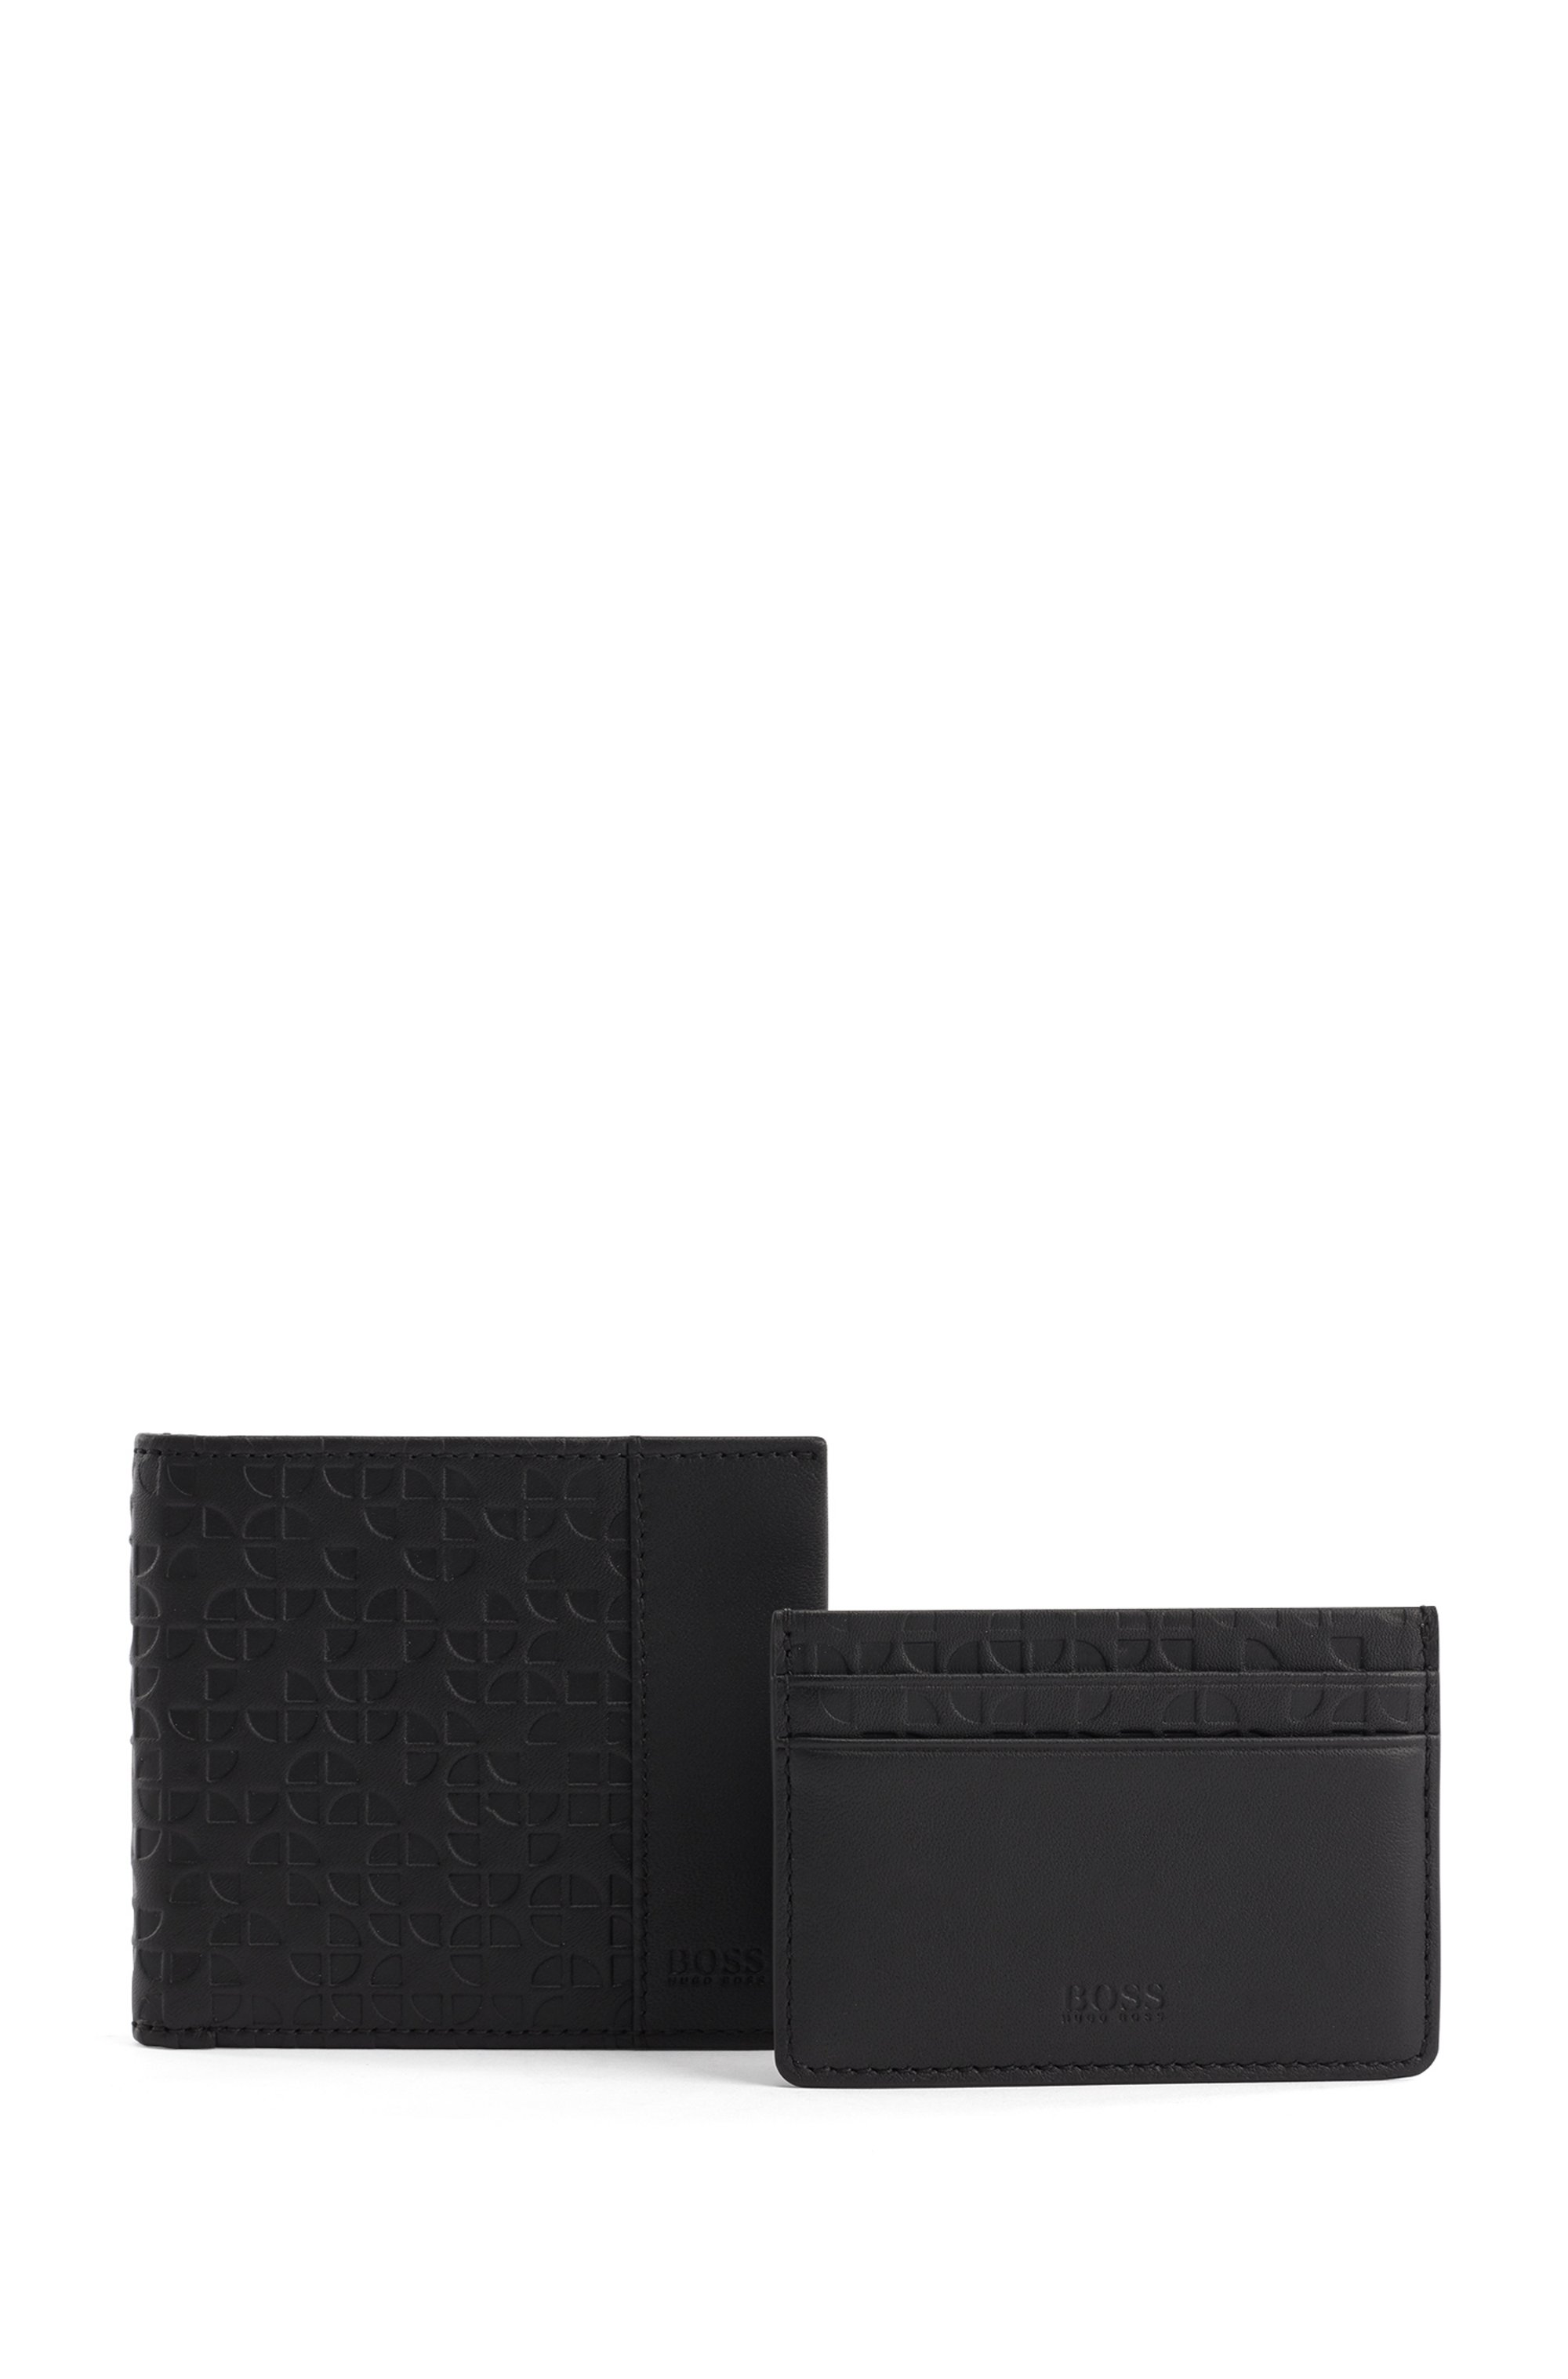 Gift-boxed wallet and card holder in embossed leather